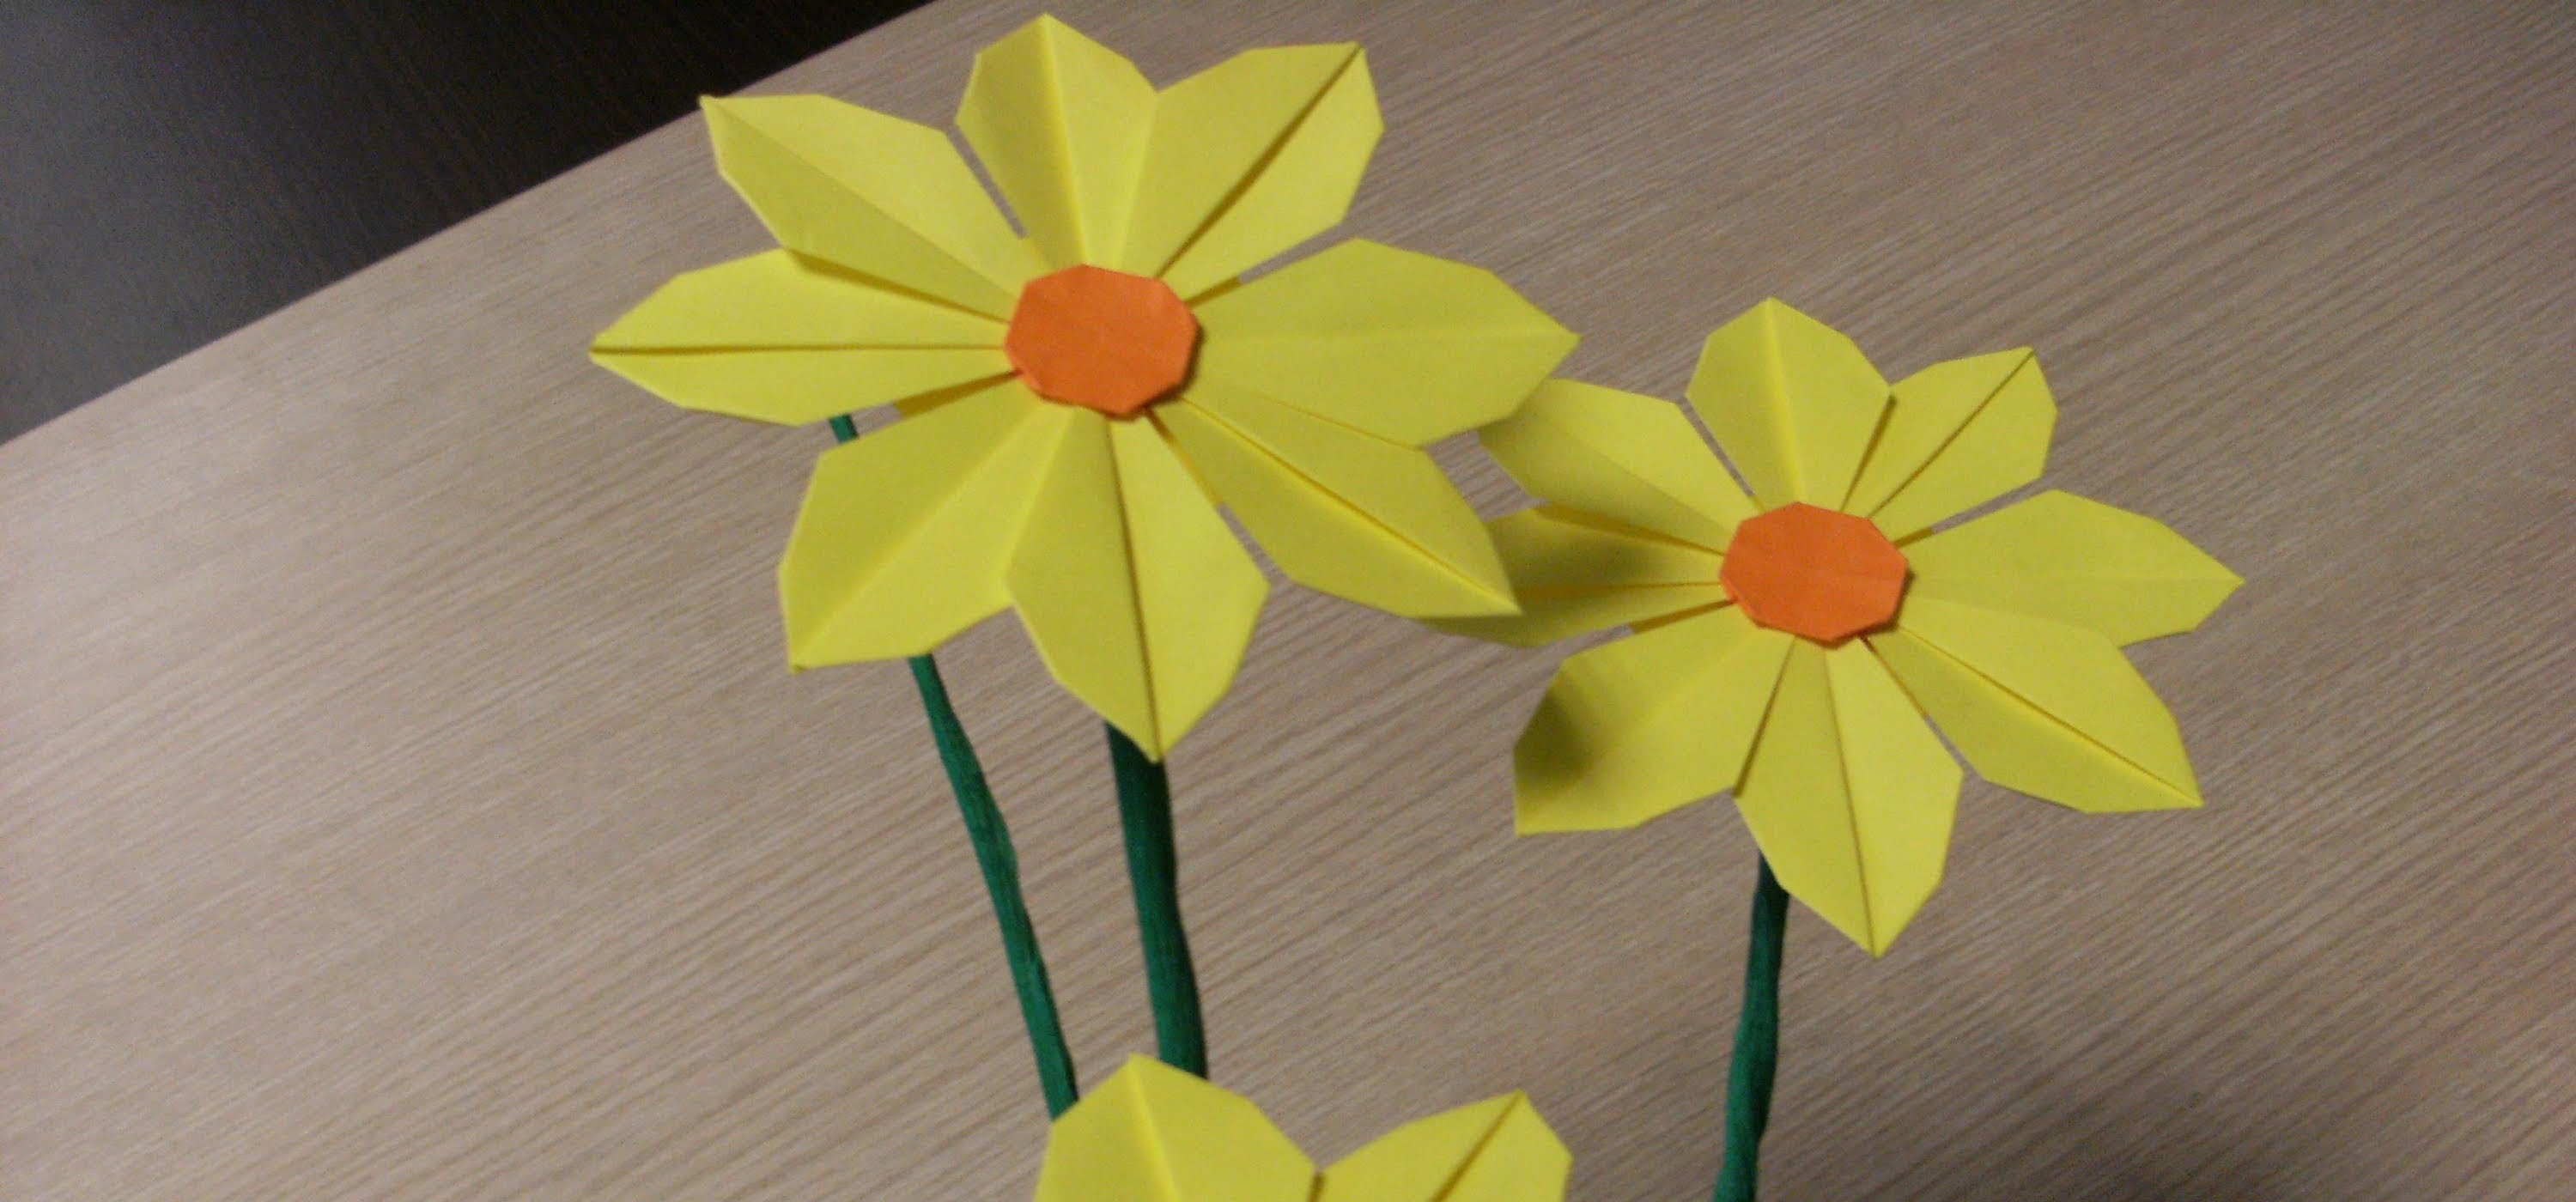 How To Make Handmade Flowers From Paper How To Make Pretty Paper Craft Origami Yellow Flower Step